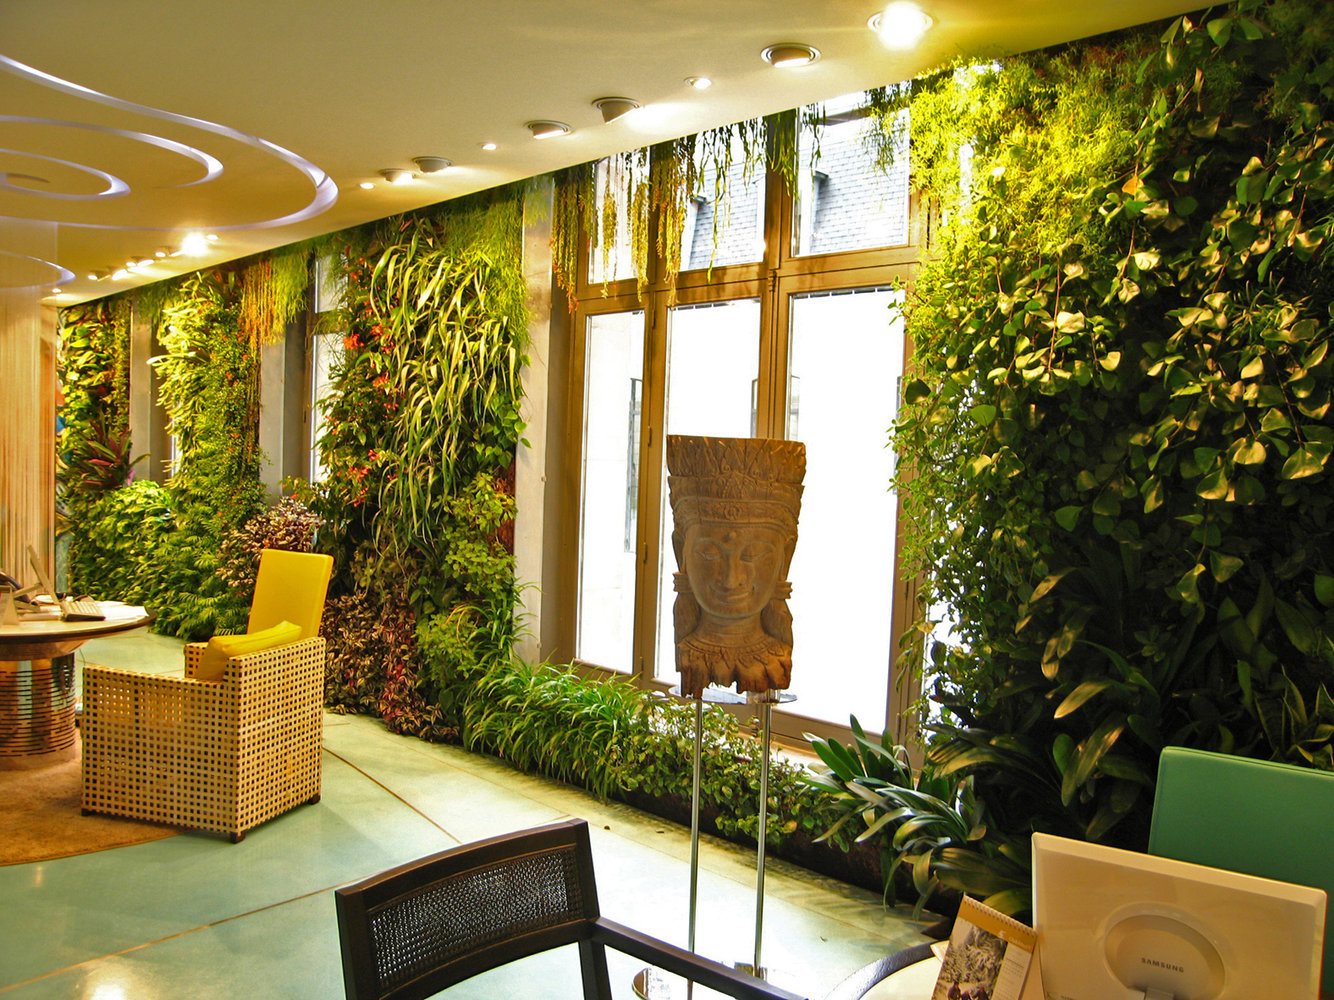 Vertical Herb Garden In Your Kitchen Manchester Piccadilly Vertical Gardens Gallery Examples From